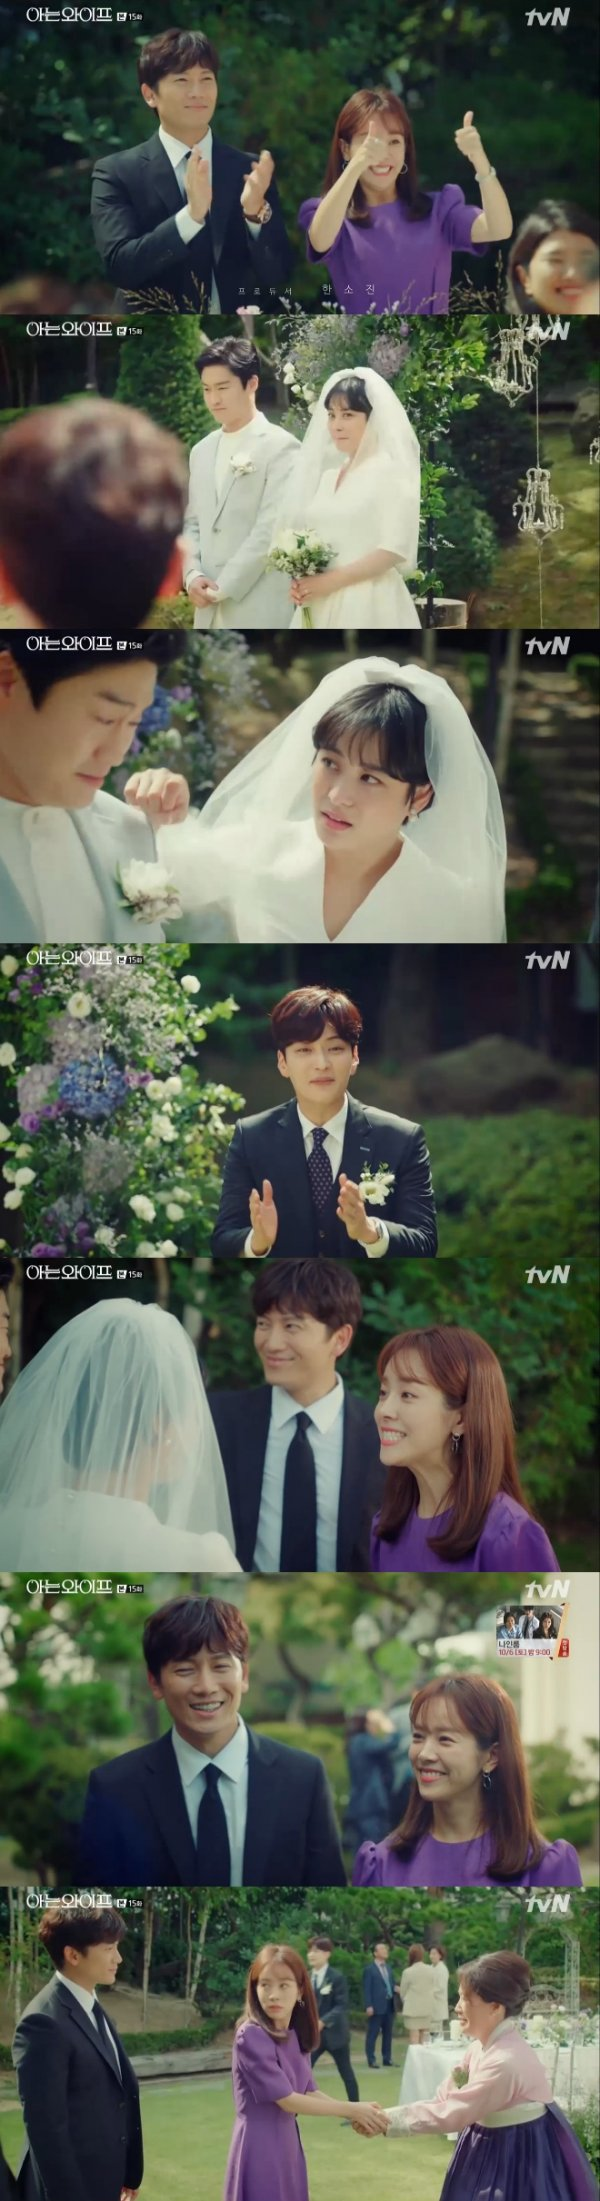 <p>Ji Sung introduced Han Ji-min to his parents.</p><p>On the 19th tvN waterworks drama Knowing Wipe (Screenwriter Yang Hui Sang Production Lee Sang-yeob) In the 15th round, the appearance of Ji Sung, a car that introduces Hwa Jin-min to his parents Drawn.</p><p>On this days broadcast, we started a wedding ceremony for Chaeun (Park Hee-von) and Osansik (o conscious). Yoon Jeong-hoo (Cha-sun-ta) served as chairman, and Joo Hyuk and Uzin also participated in the tour. Common sense also showed tears while reading aloud marriage declaration sentences and laughed.</p><p>After the guests photo time. Joo Hyuk and Uzin celebrate common sense and picking up, and Jonfu announced that they couple well said that Joo Hyuk and Uzin had become a couple. Then Joo Hyuk introduced parents to Uzin. My son who did not get married suddenly introduced Uzin we are in dating Joo Hyuk s parents made us satisfied.</p>